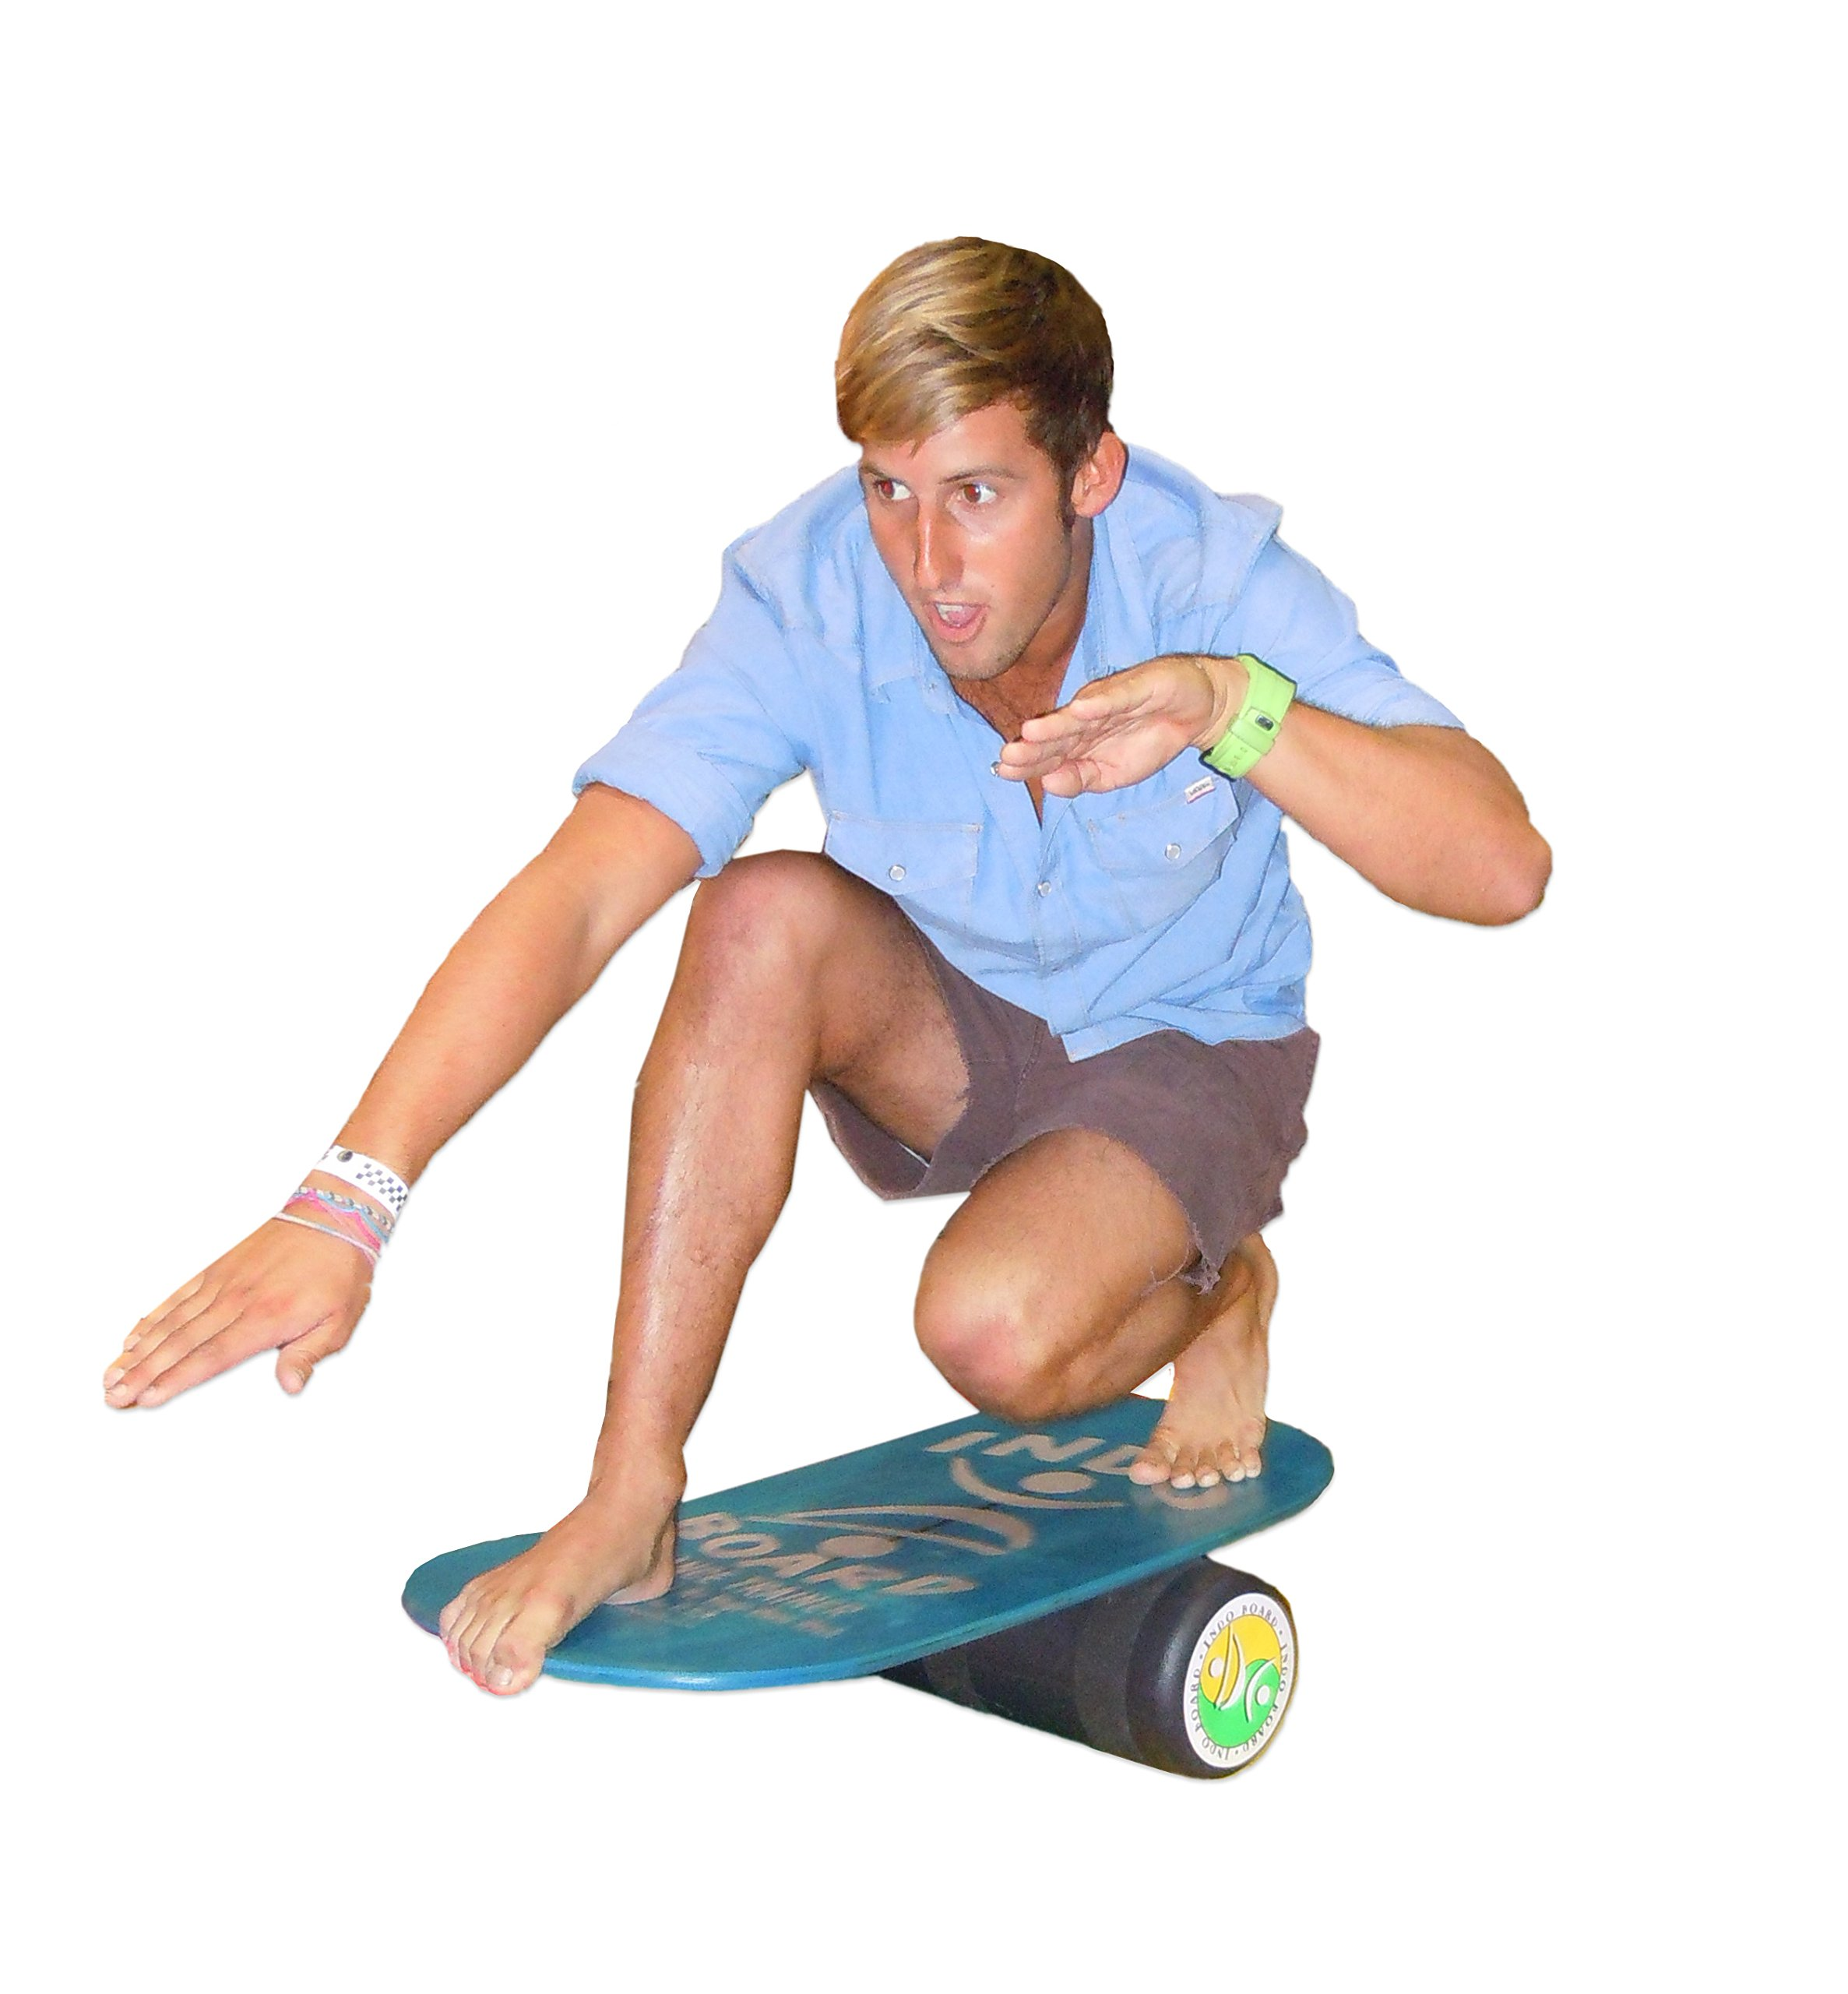 INDO BOARD Rocker Balance Board Package Ages, Improve Balance, Comes with 33'' X 15'' Non-Slip Deck 6.5'' Roller and 14'' Cushion - Mahogany Brown by INDO BOARD (Image #4)